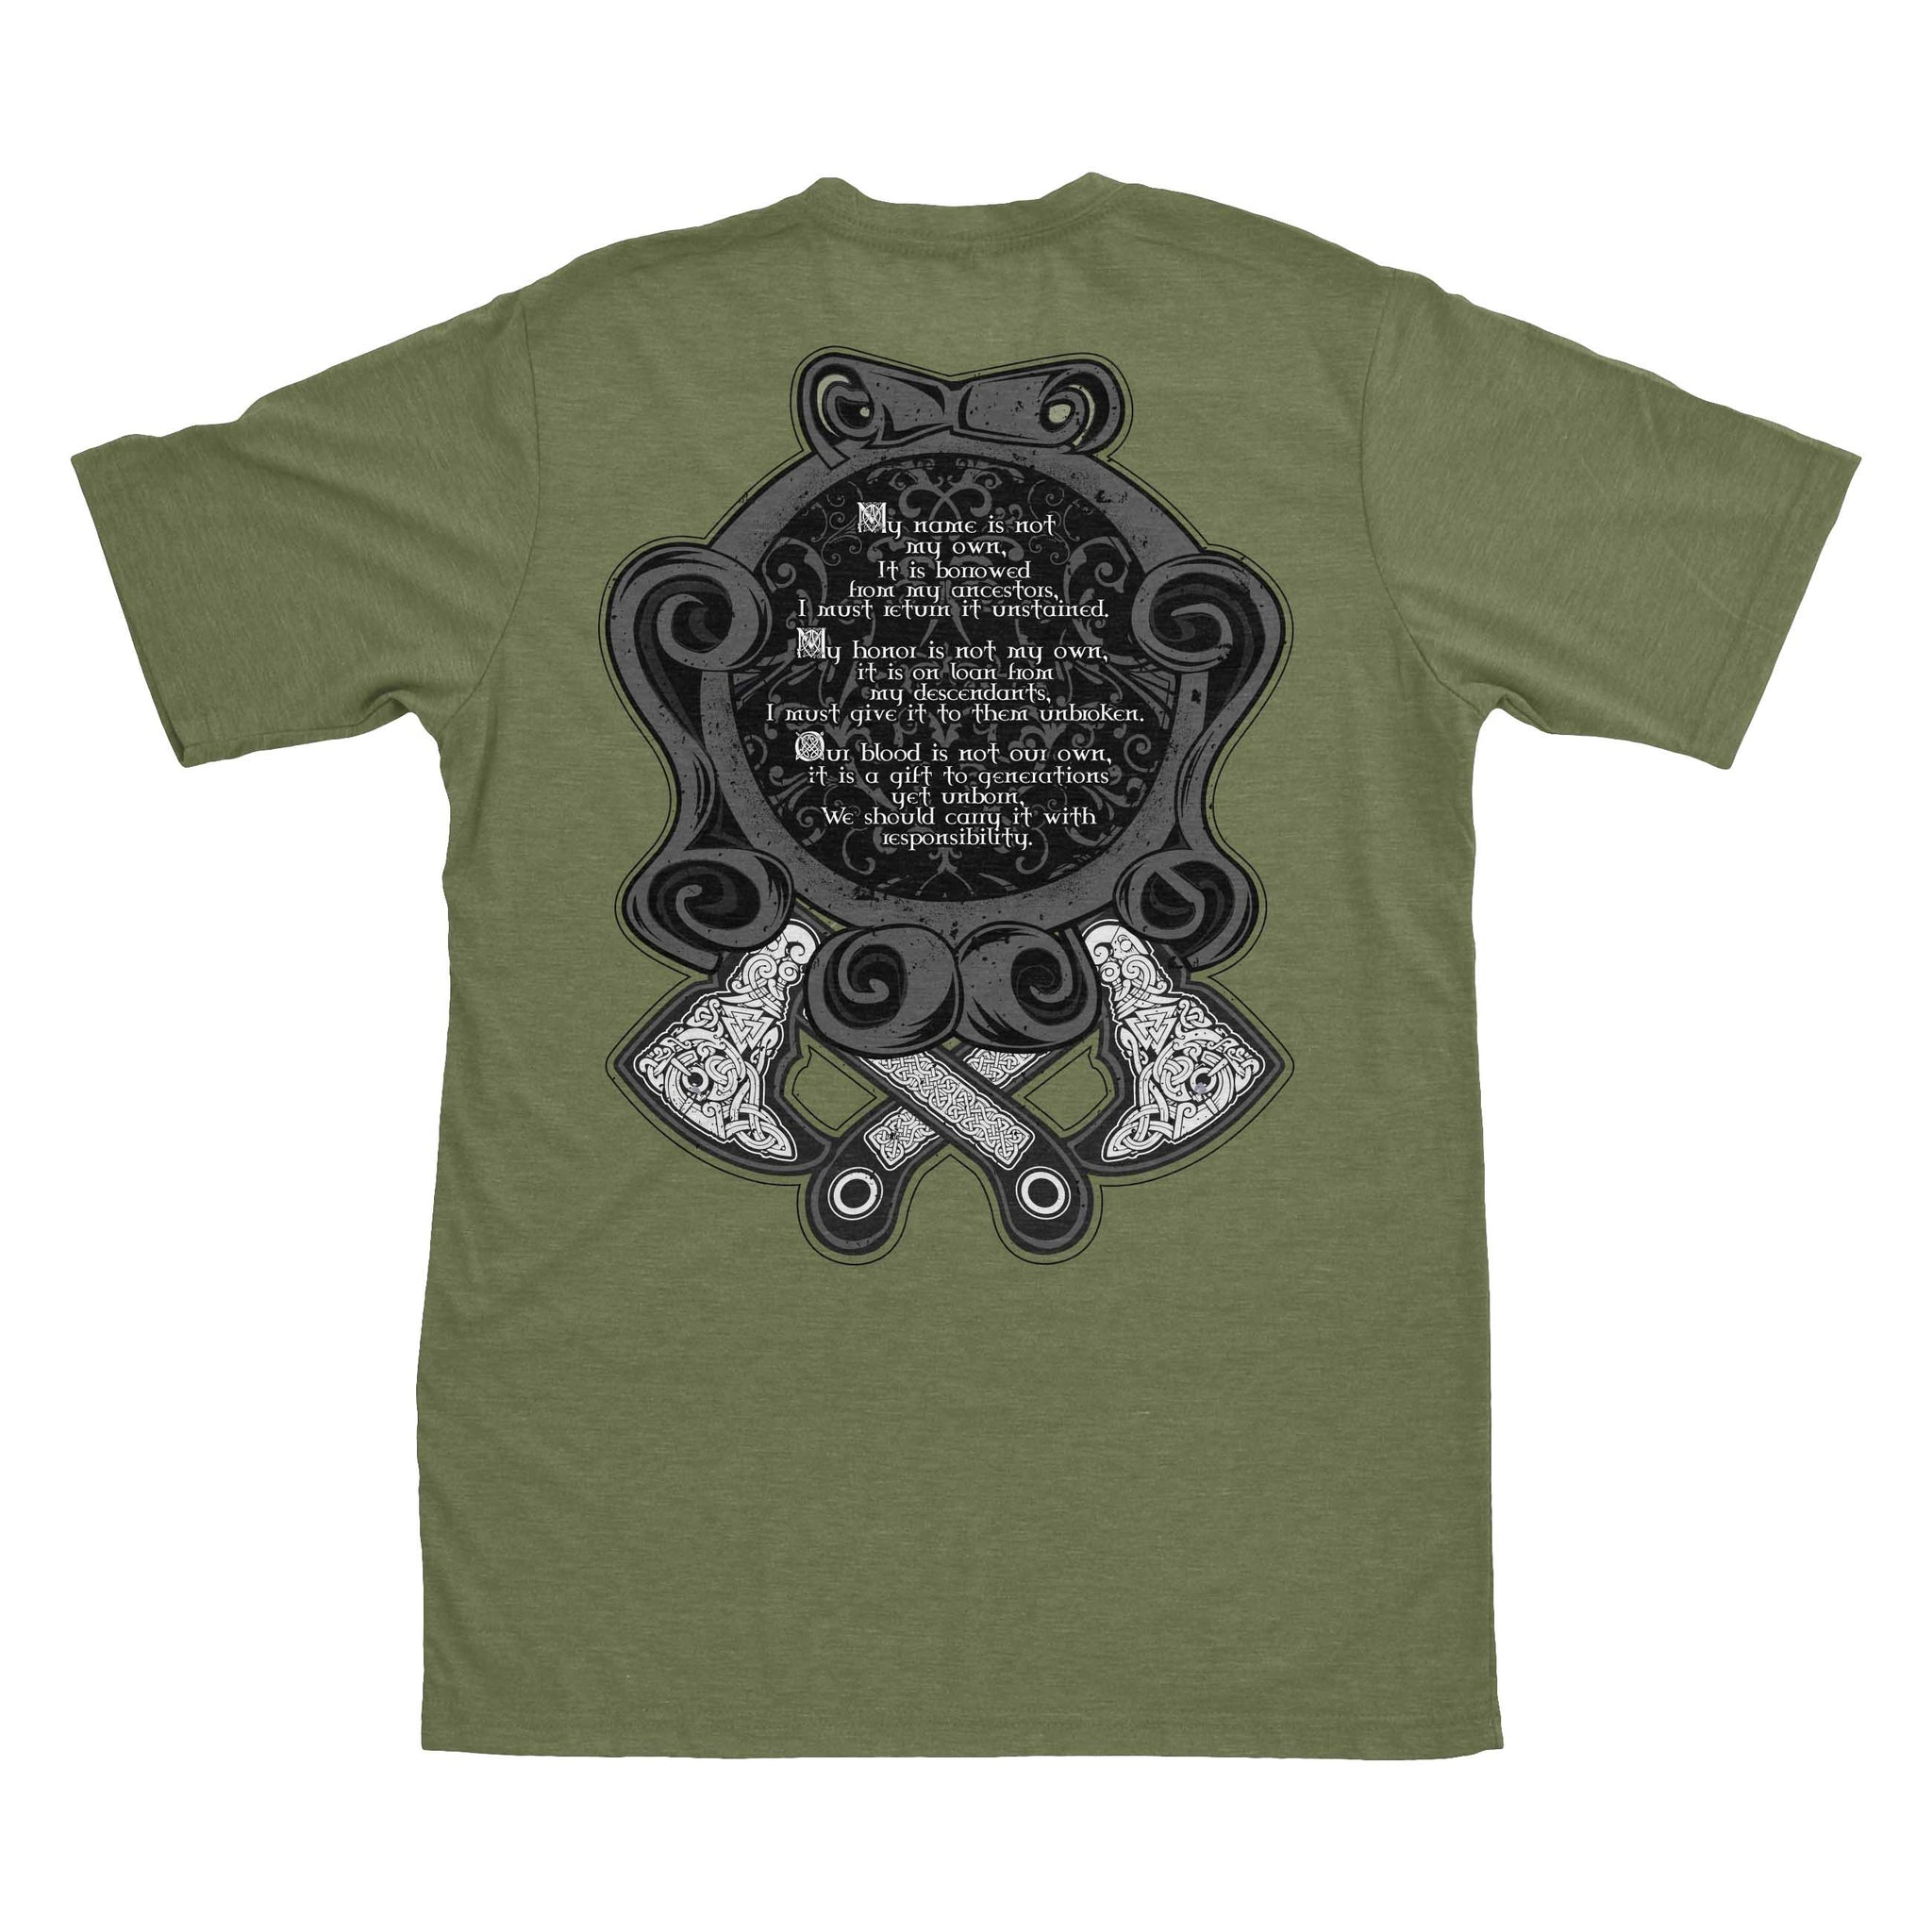 Not My Own - Military Green - T-Shirts - Pipe Hitters Union